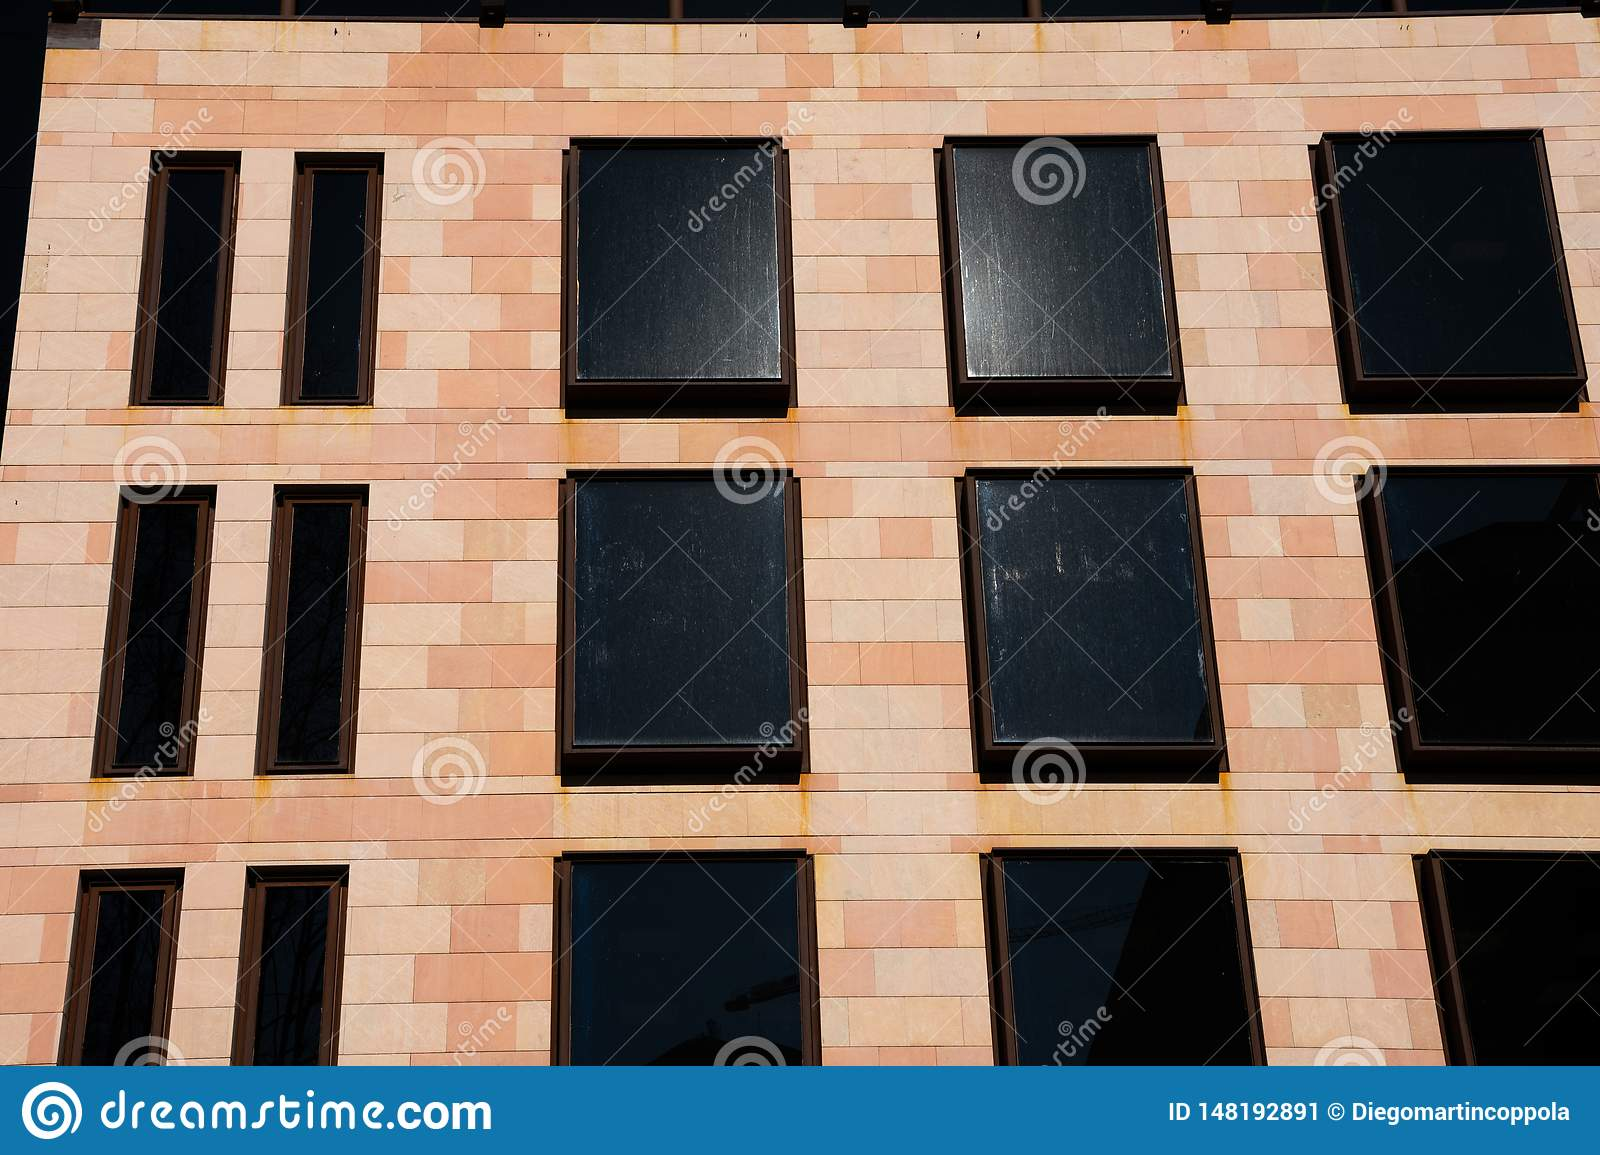 Modern building facade with black glass windows